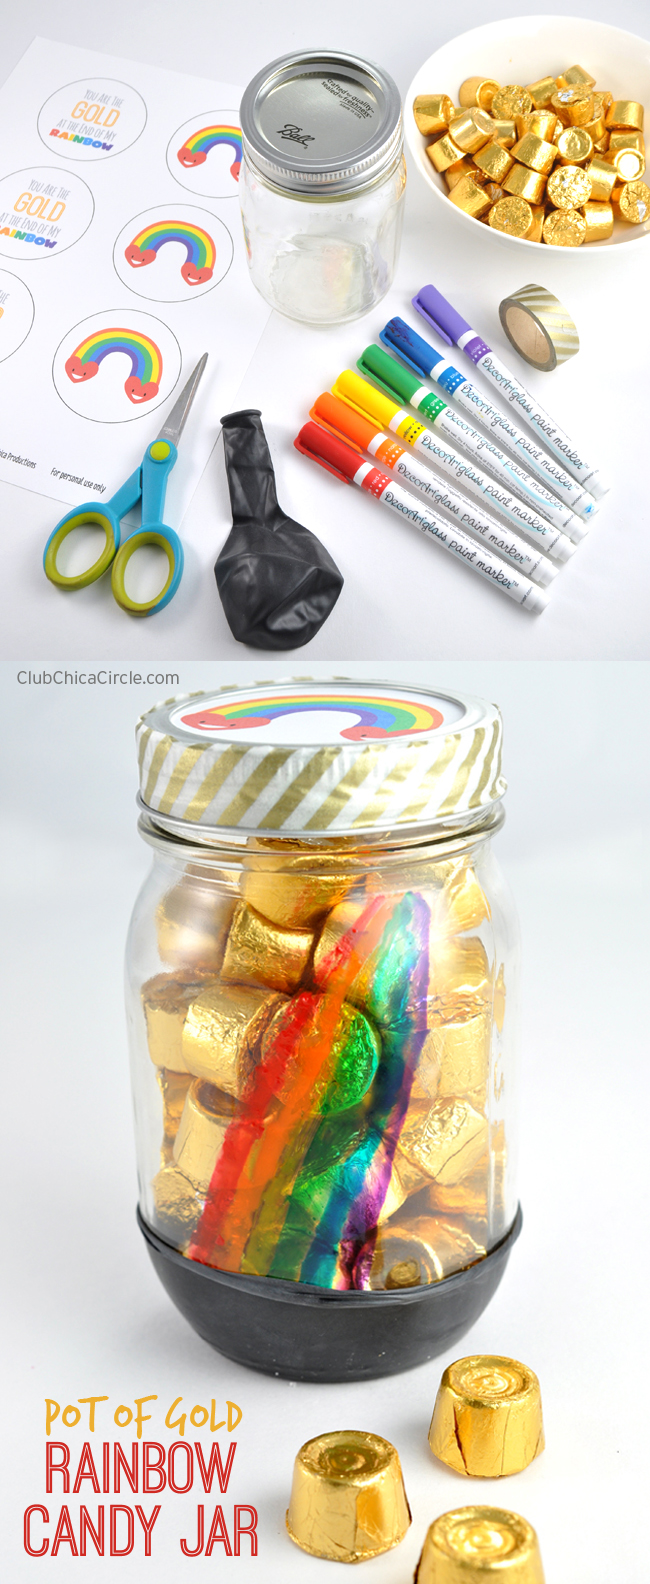 Rainbow Mason Jar St. Patrick's Day Homemade Gift Craft Idea